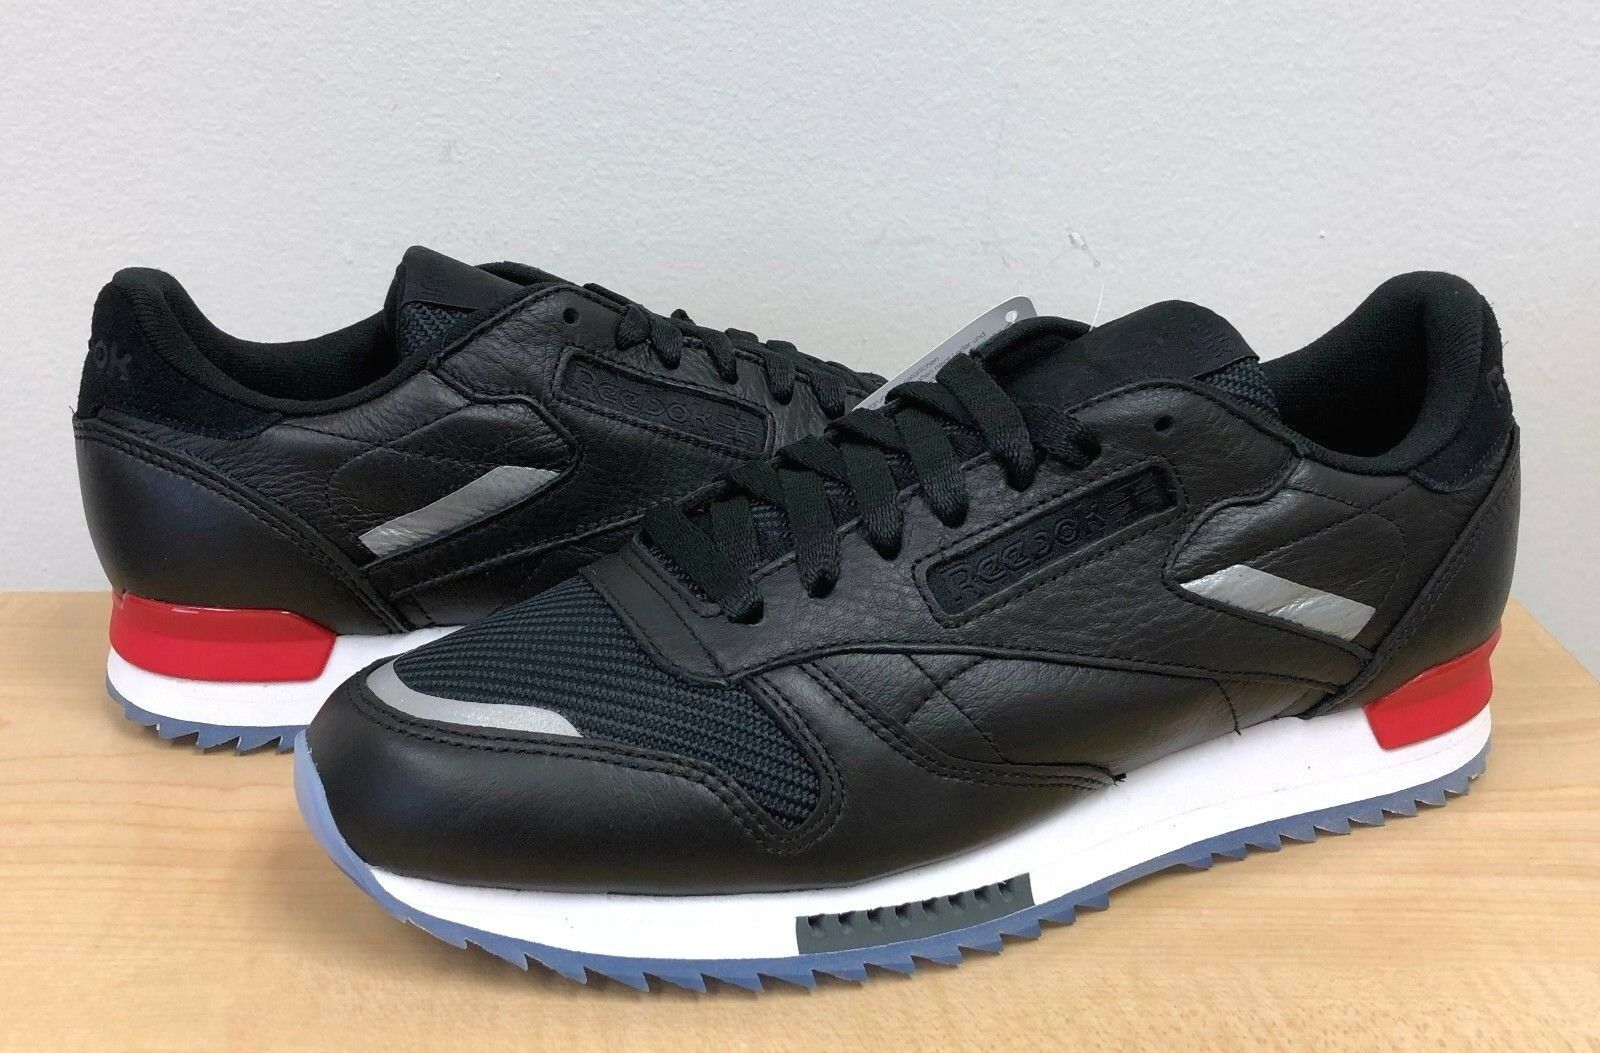 MENS RIPPLE REEBOK CLASSIC CL LEATHER RIPPLE MENS LOW BP BS5218 Black/White/Red/Dust-Ice 2059fd